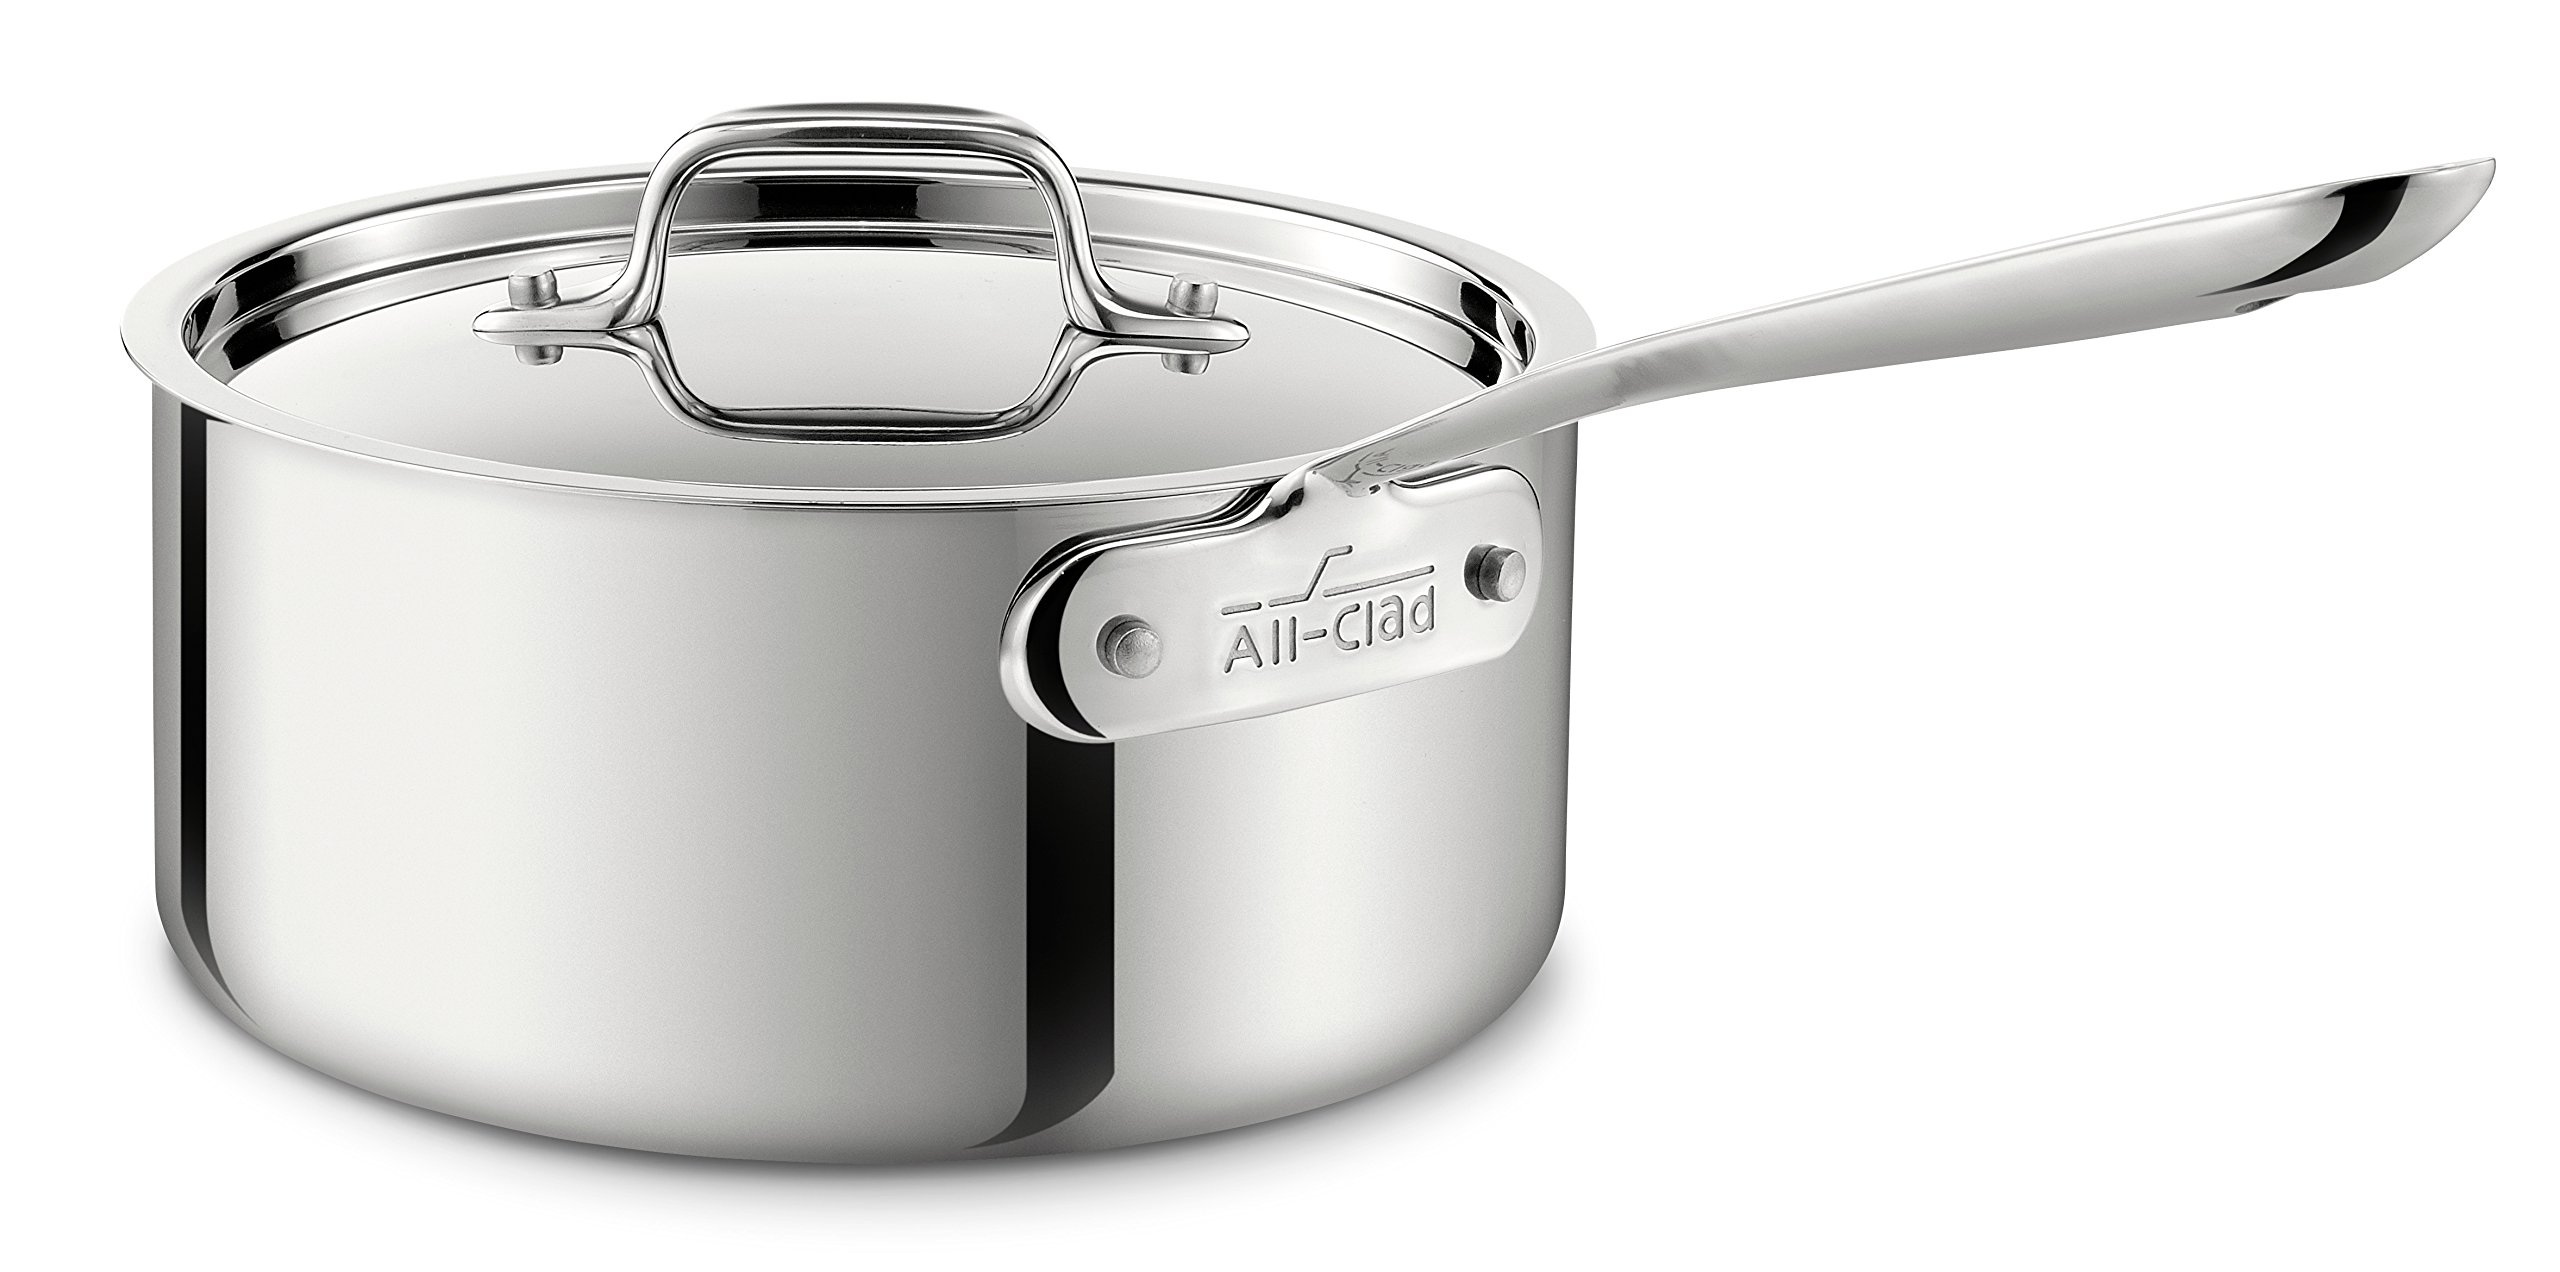 All Clad Stainless Tri Ply Dishwasher Cookware